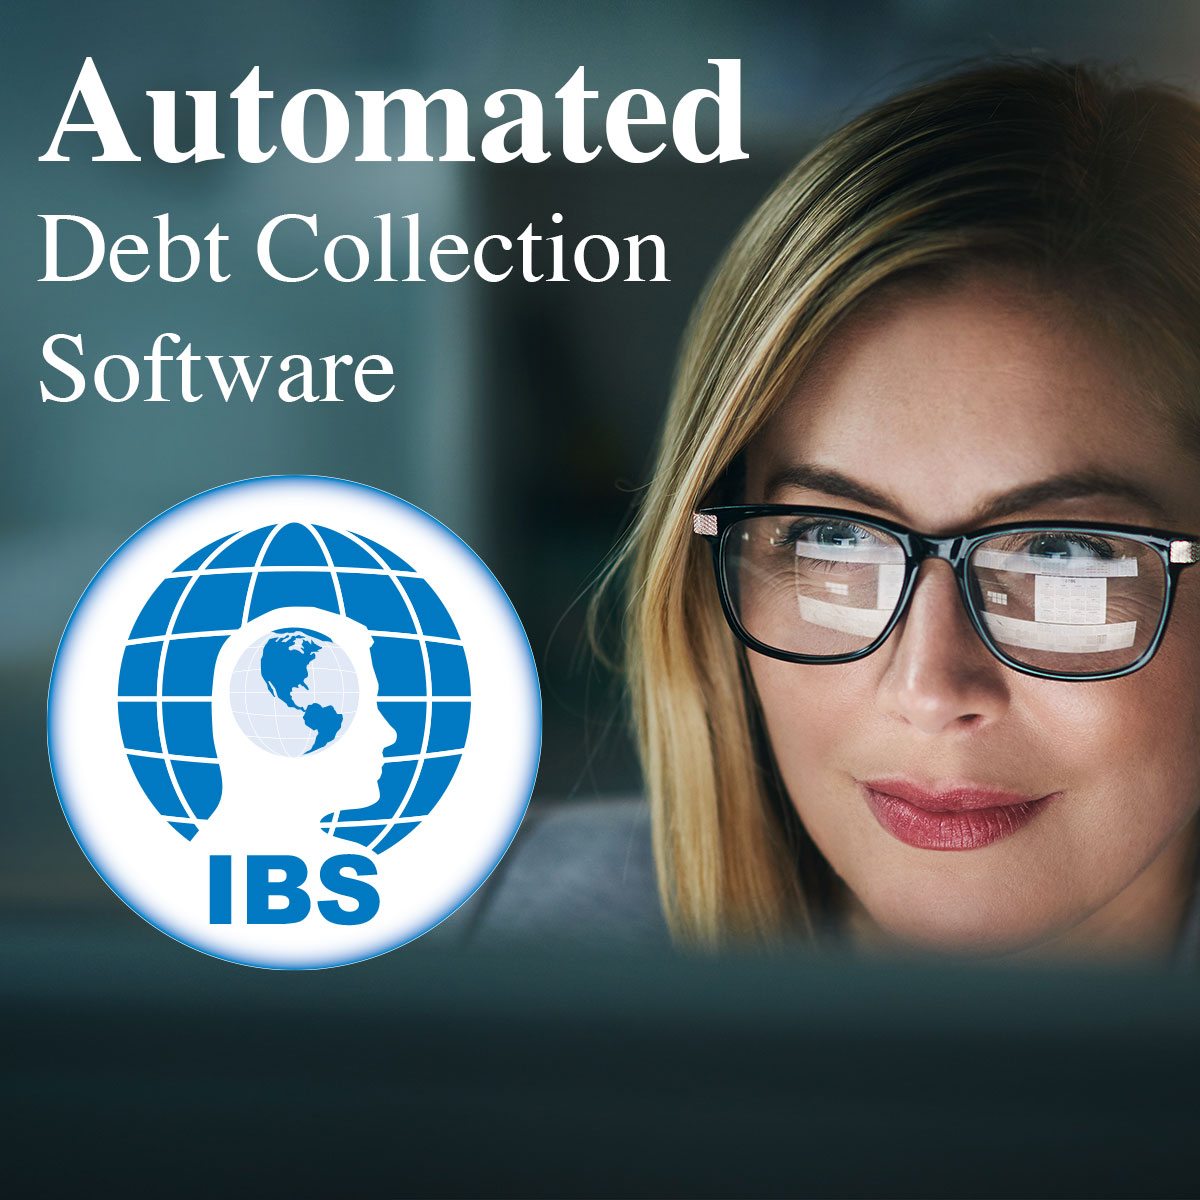 Automated Debt Collection Schema Image